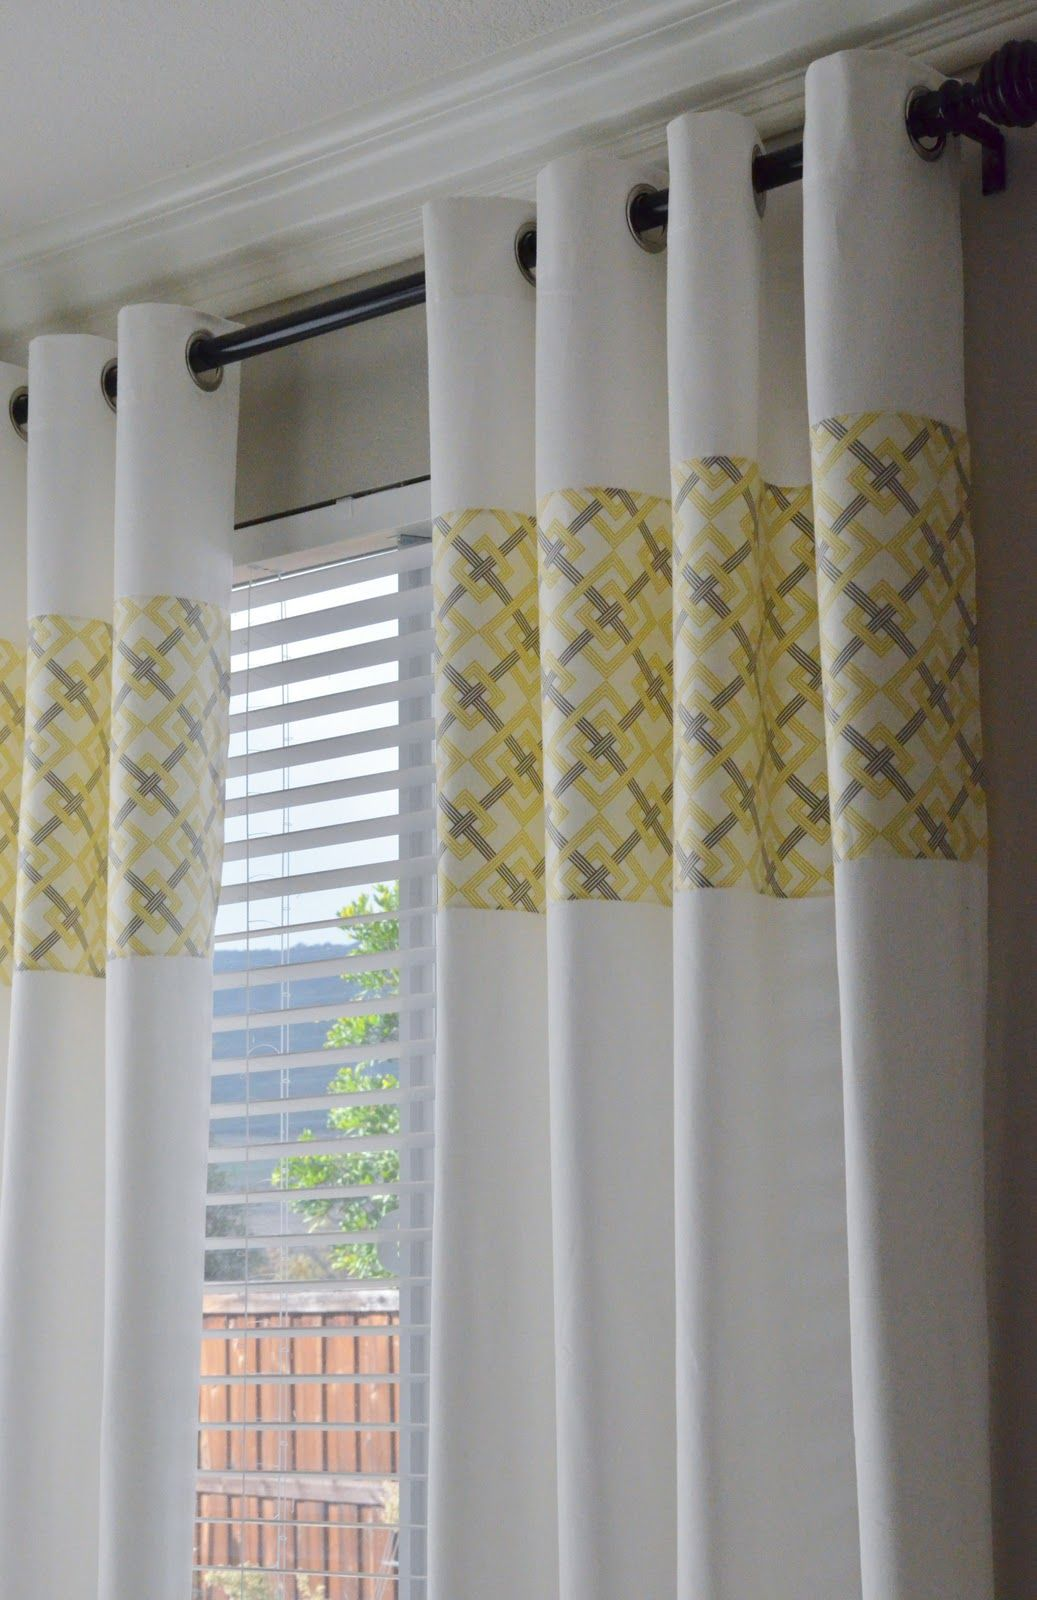 Lovely White Based Curtain With Gray And Yellow Handprinting For Window Treatment.  The Brightness Of Yellow And Gray Curtains For Your Home. Codecoration  Fabulous ...